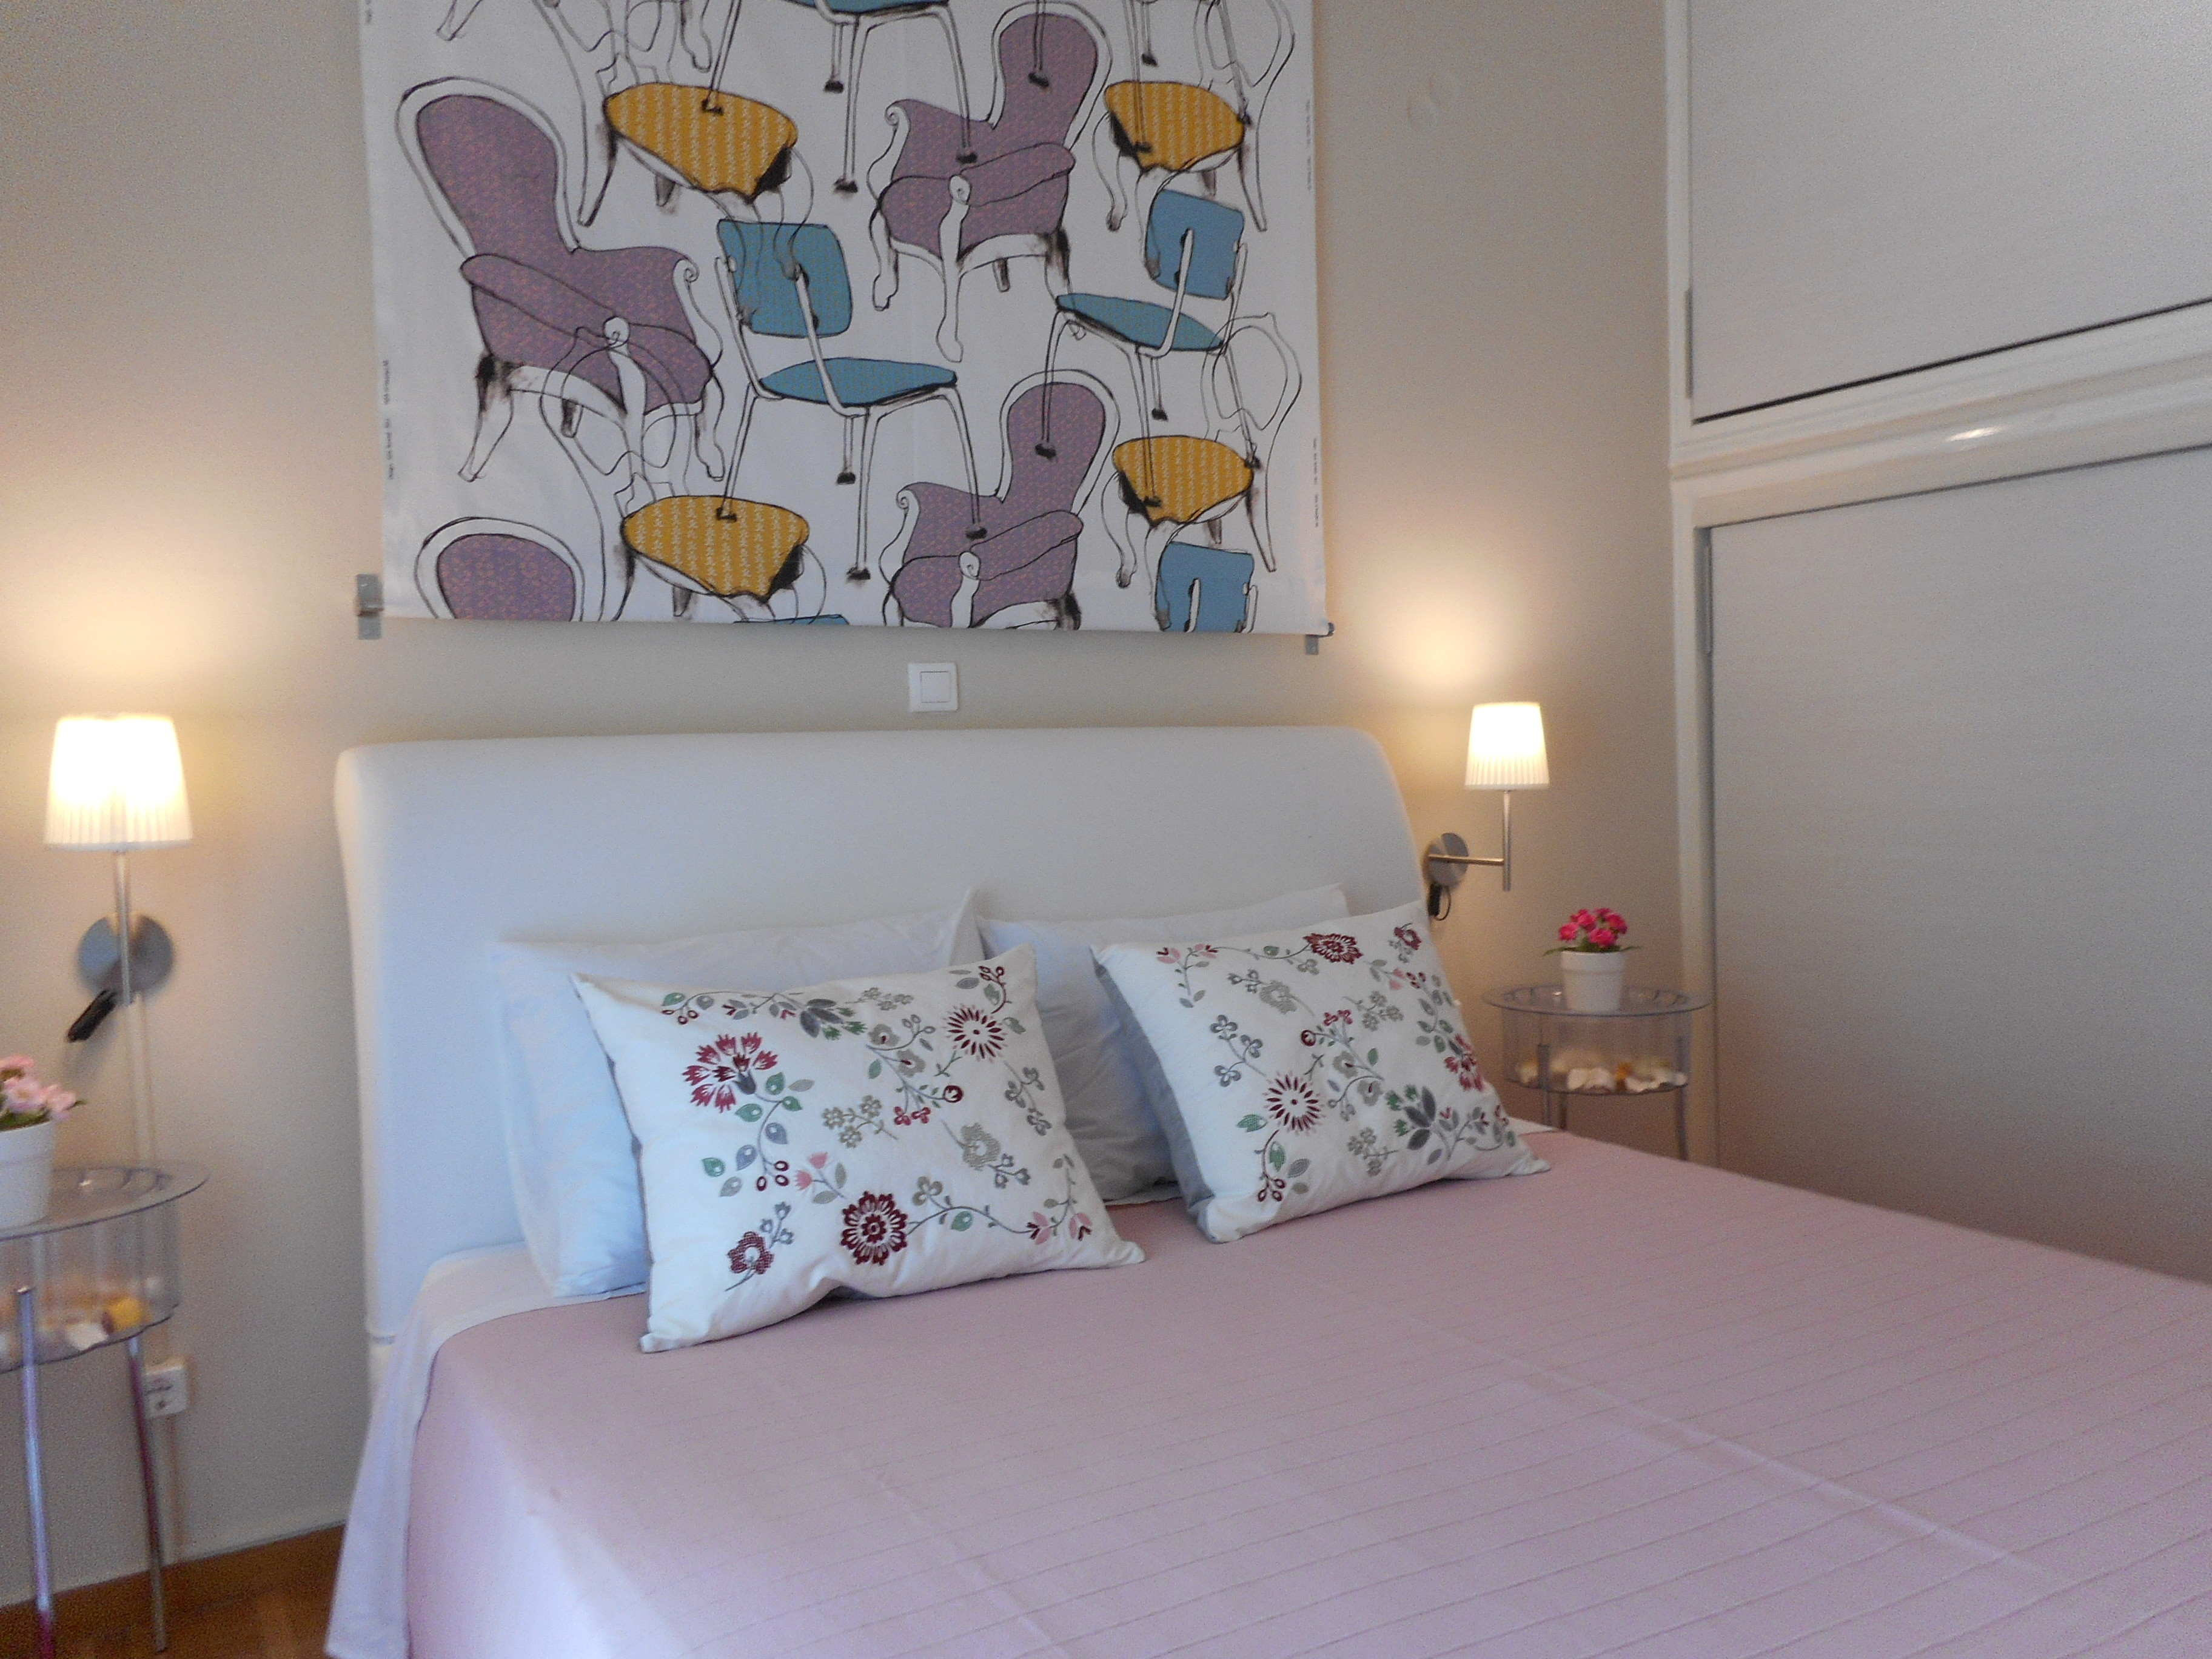 Ultracareapartments - Athens - City Center - 1 Bedroom Apartment photo 21795762